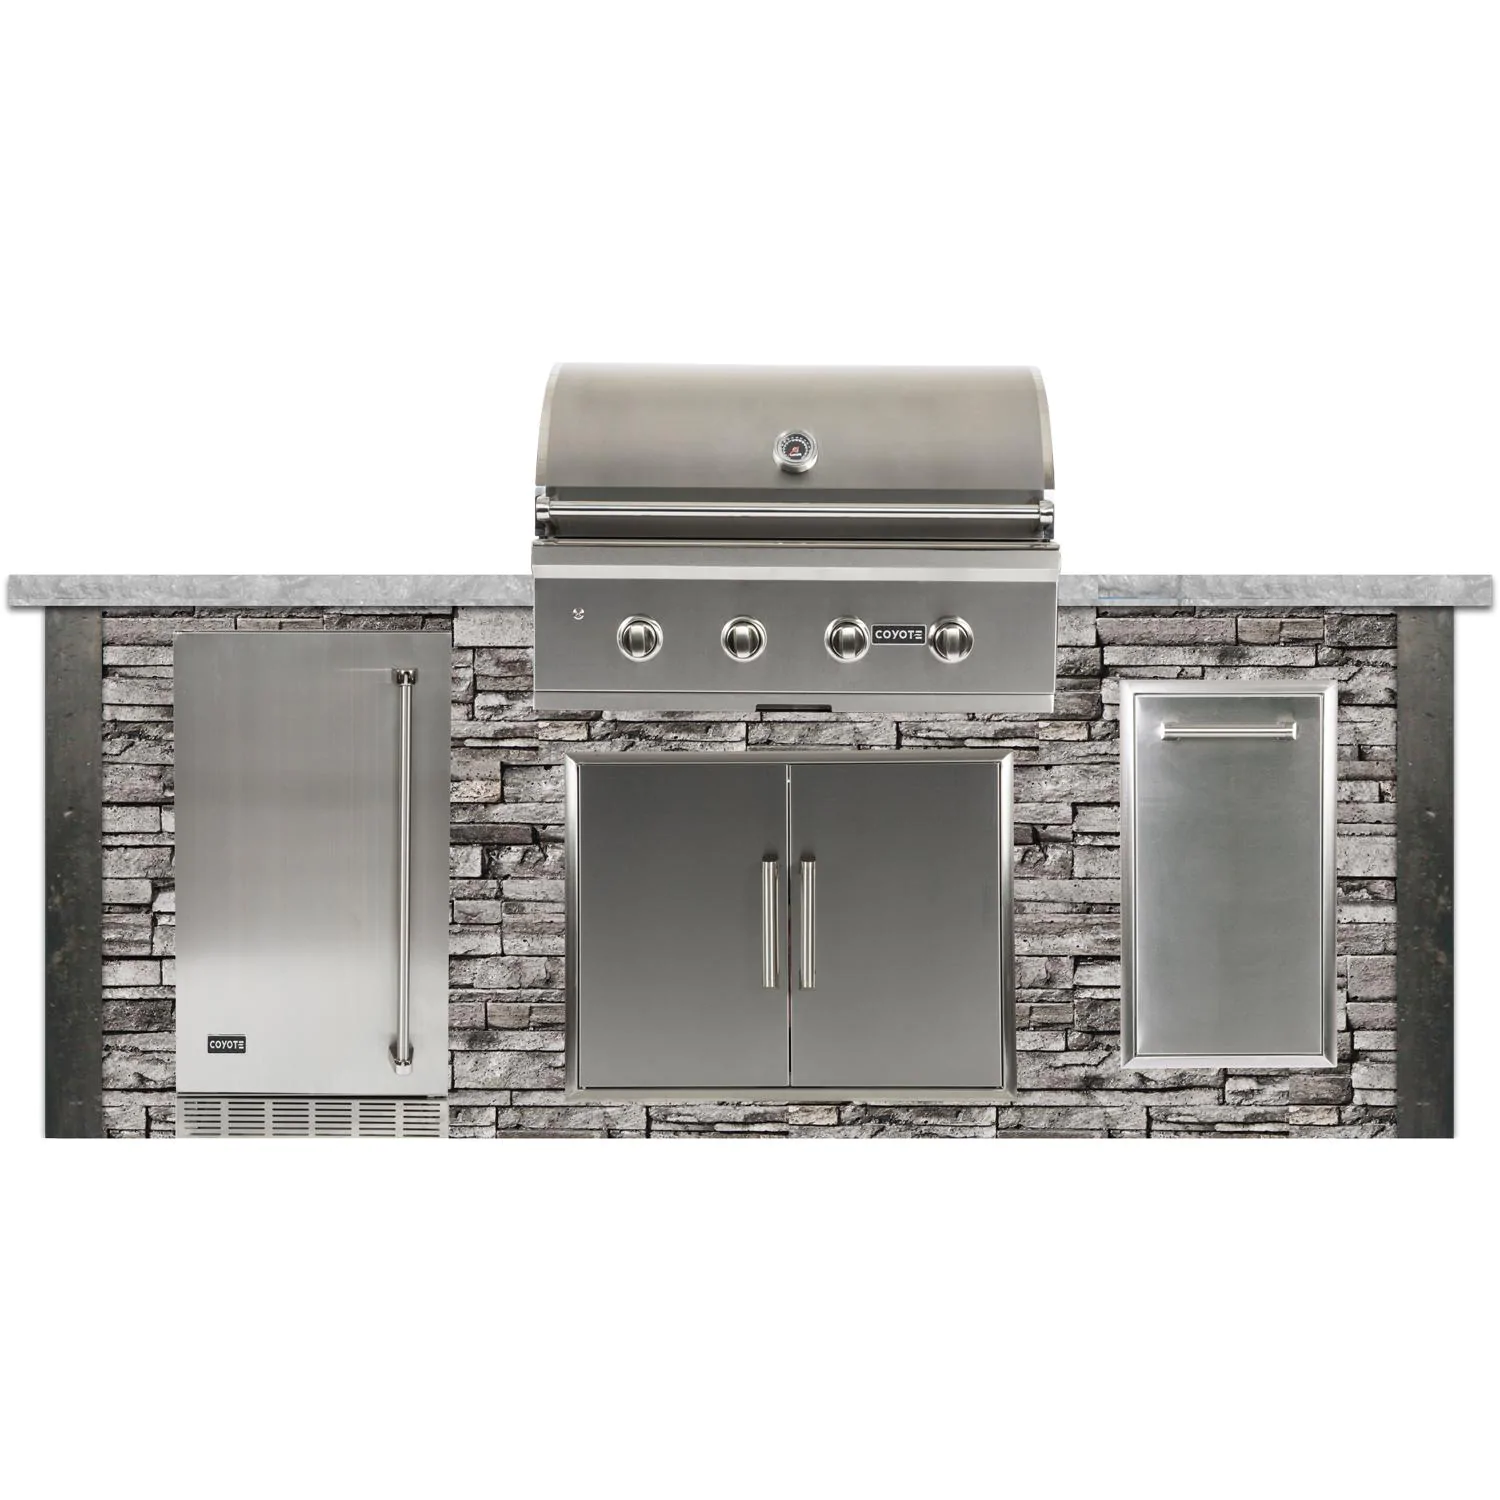 Coyote Ready-To-Assemble 8 Ft Outdoor Kitchen Island With 36-Inch C-Series Natural Gas Grill (Ships As Propane With Conversion Fittings) - Stacked Stone/Stone Gray - RTAC-G8-SG-C2C36NG